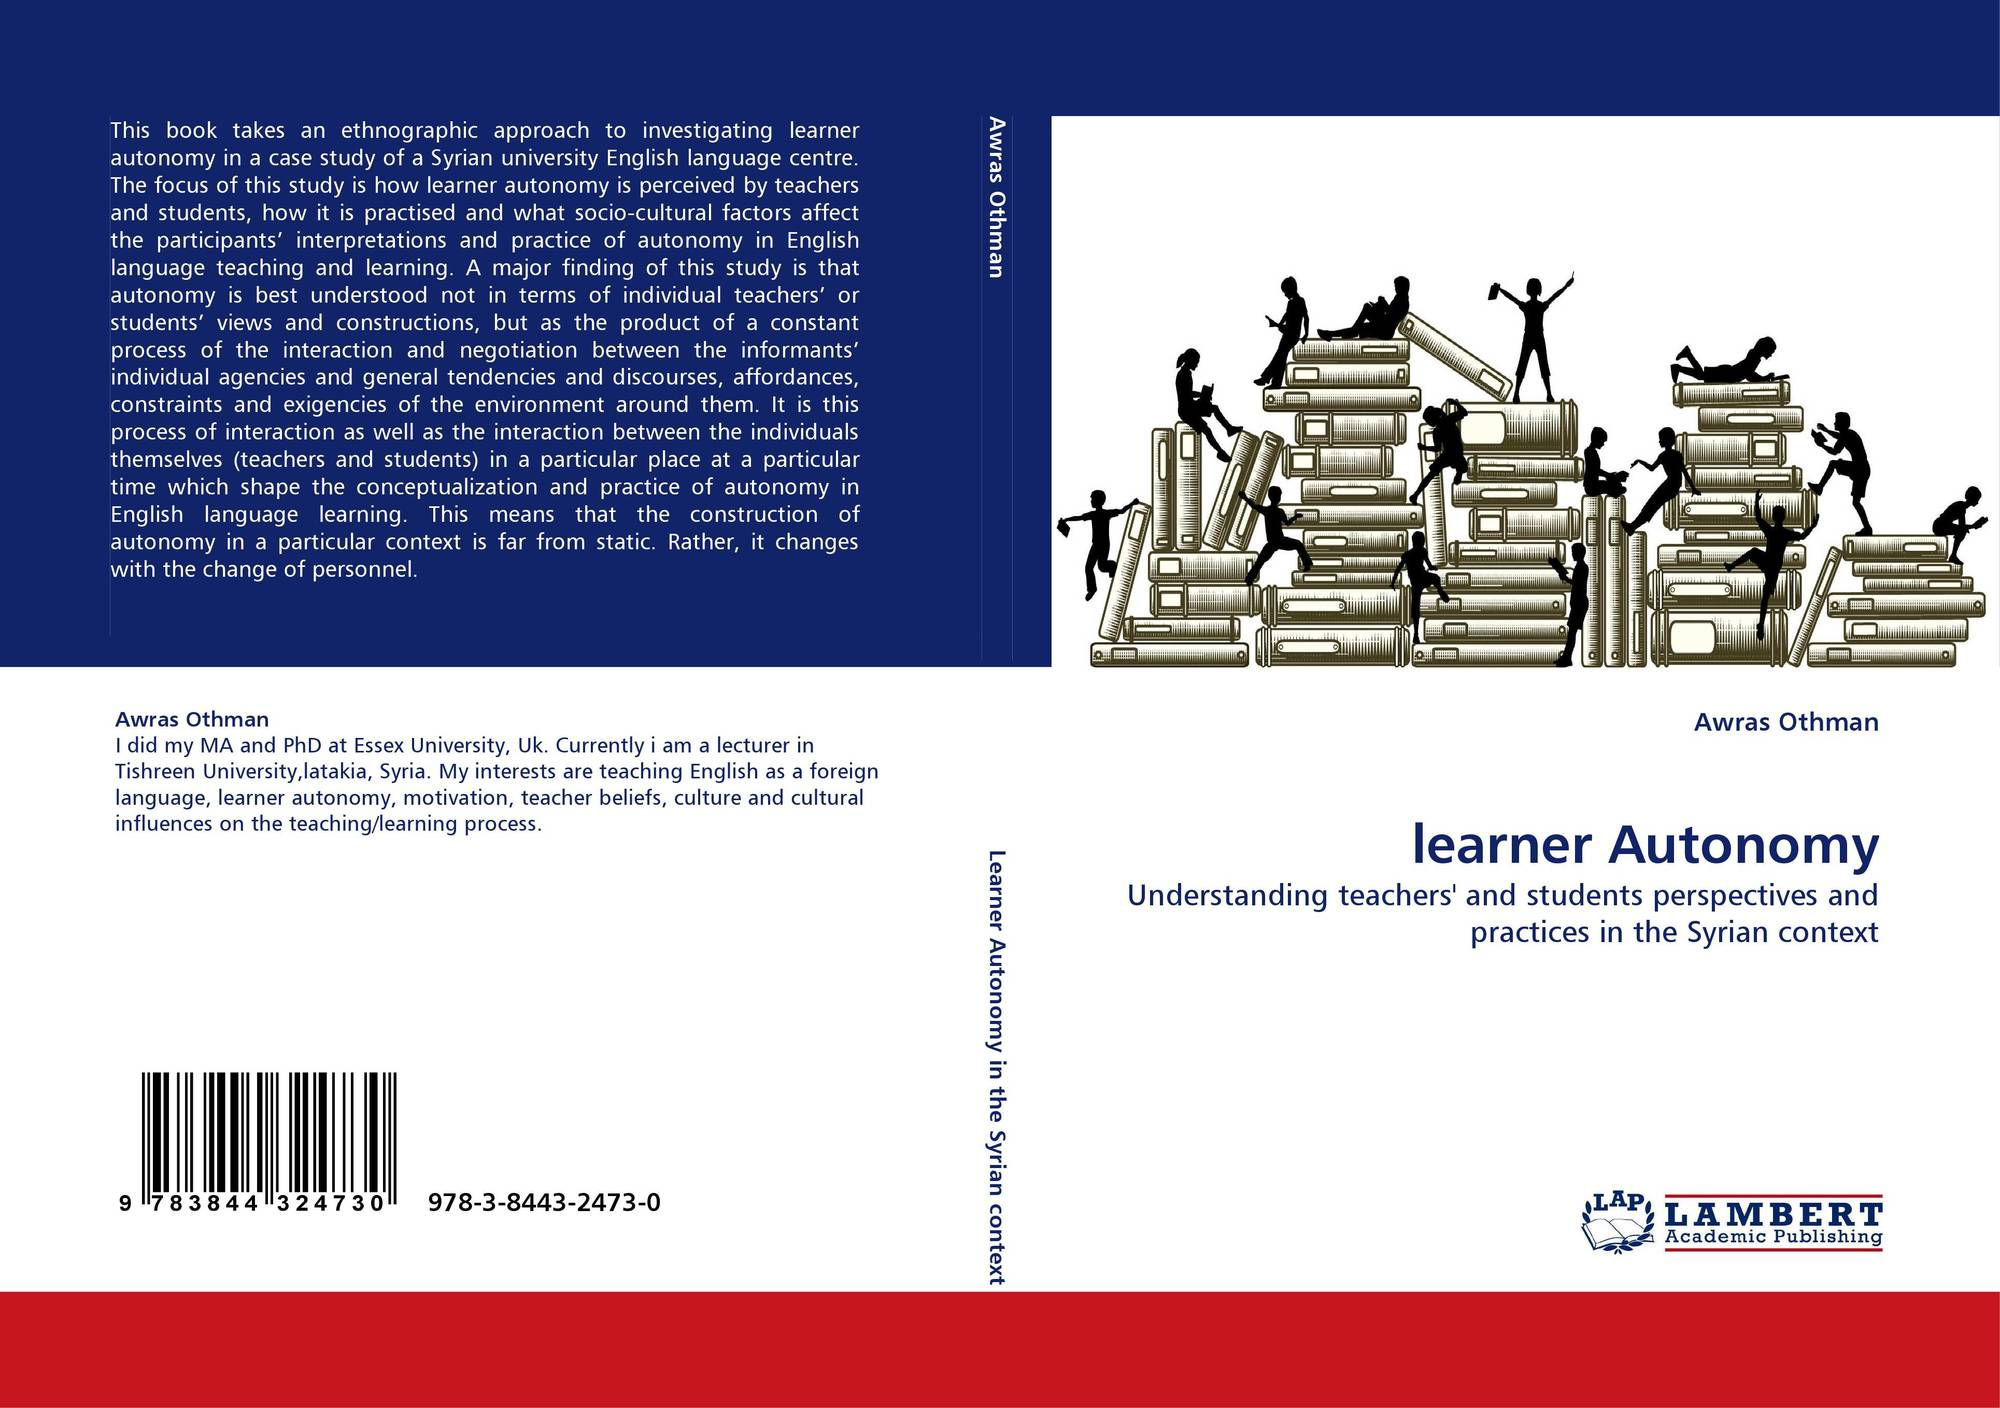 a general review of learner autonomy Keywords: china, efl, language learning, college english, learner autonomy 1 introduction the concept of learner autonomy was first introduced into the this article, therefore, aims at carrying out a general review upon the relevant research within the past decade, thus giving readers a.